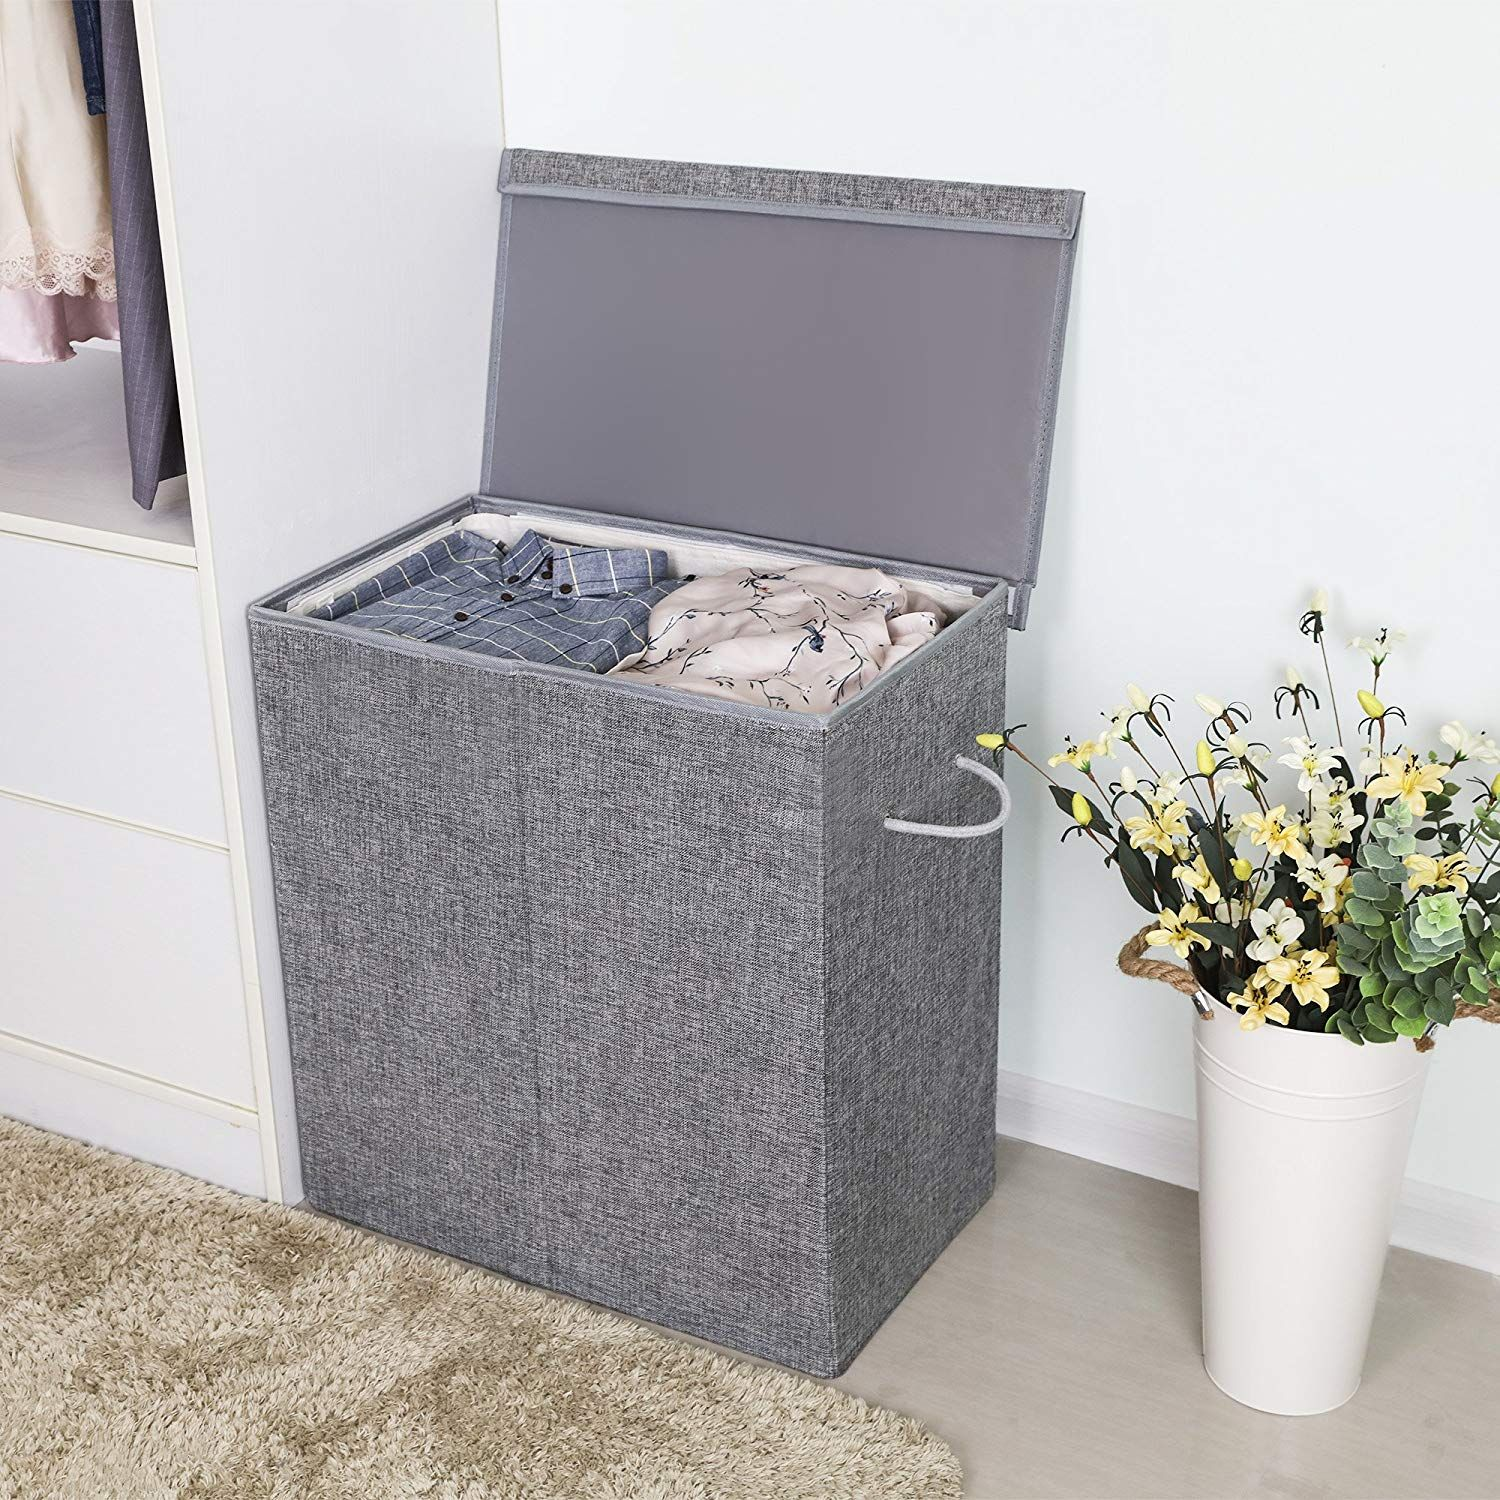 Fabric Double Laundry Hamper With Images Laundry Hamper